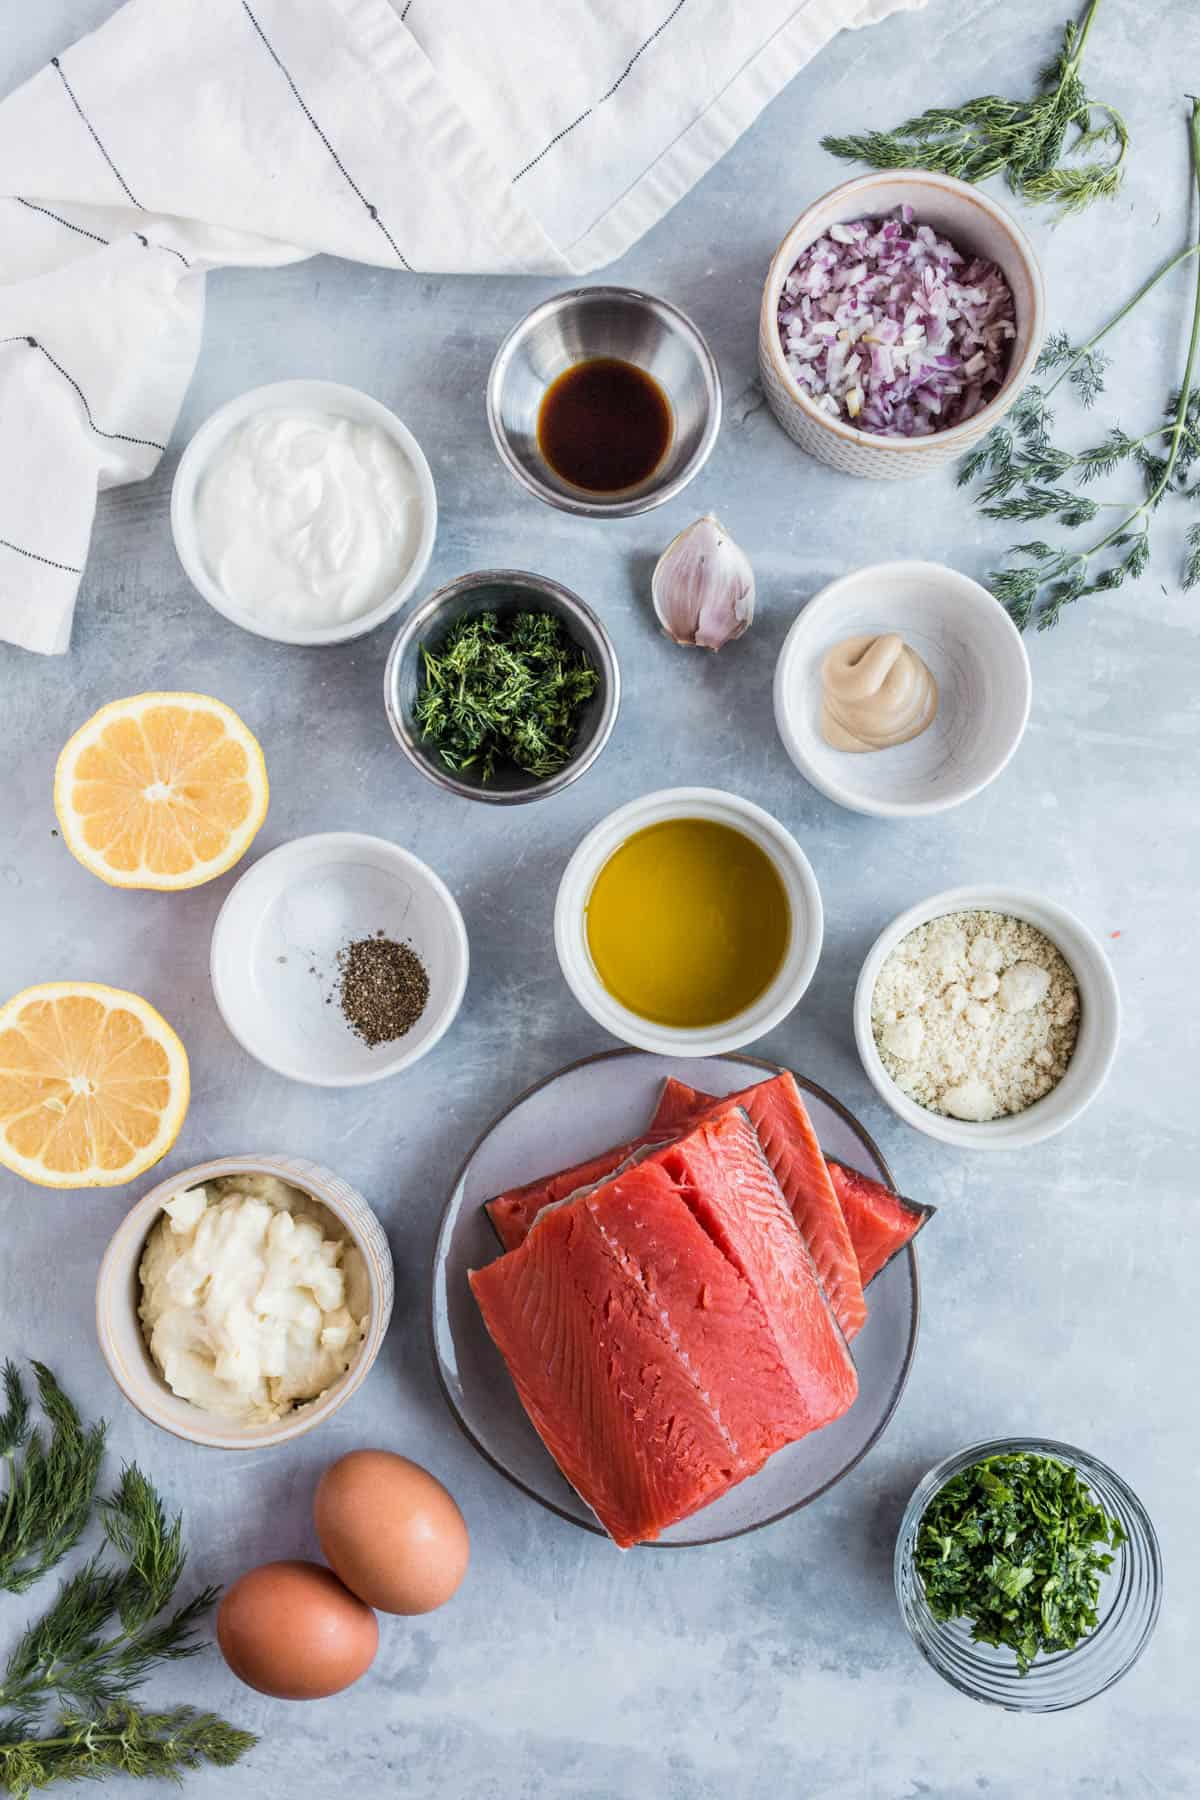 all of the ingredients for salmon patties on a grey countertop